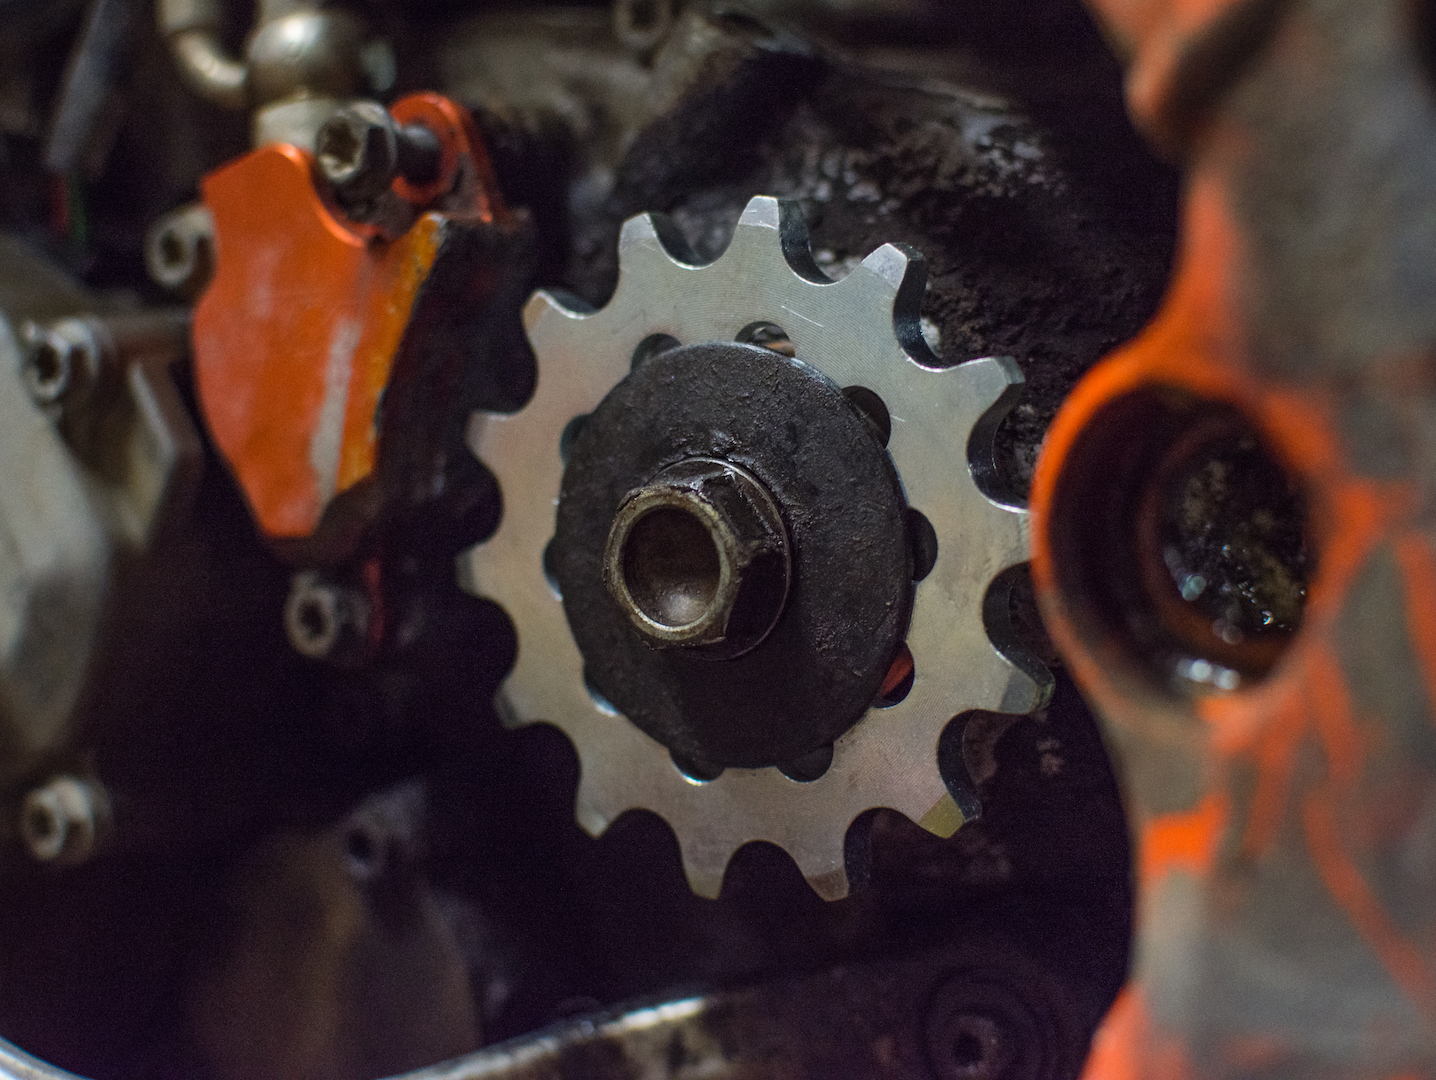 Adding the new OEM front sprocket. It looks even newer than new next to a dirty engine case!